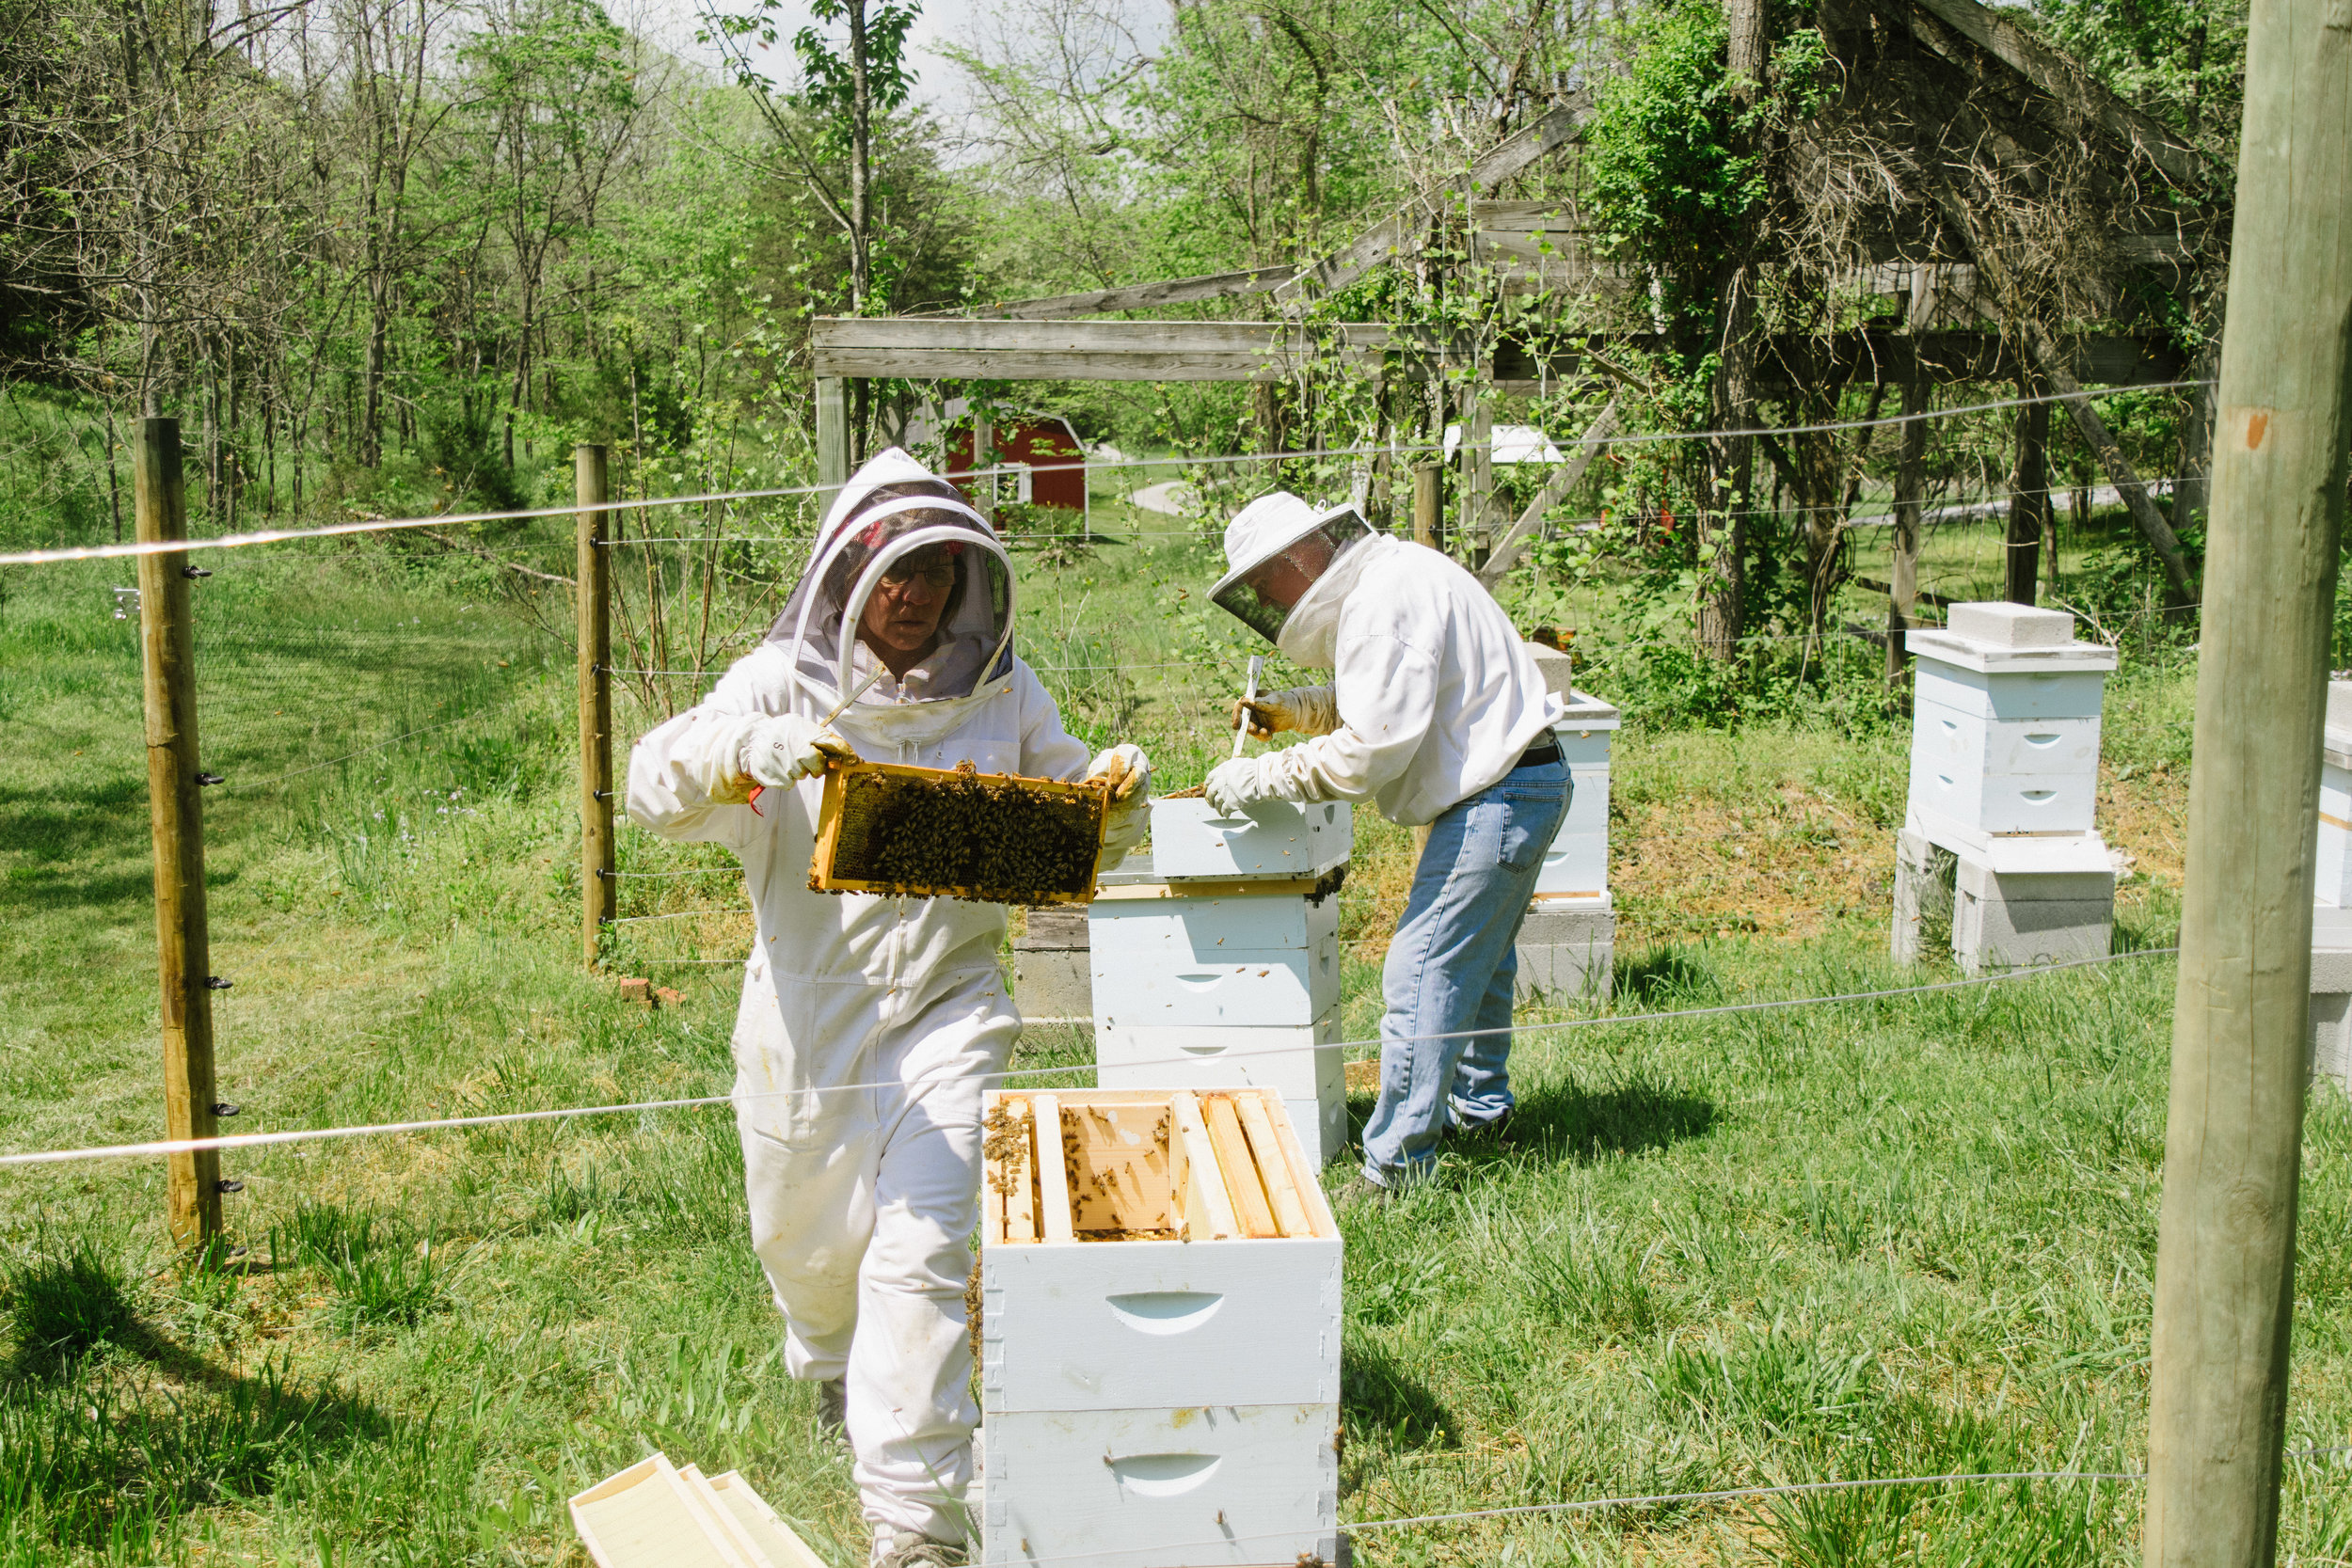 Moving select frames to the new hive